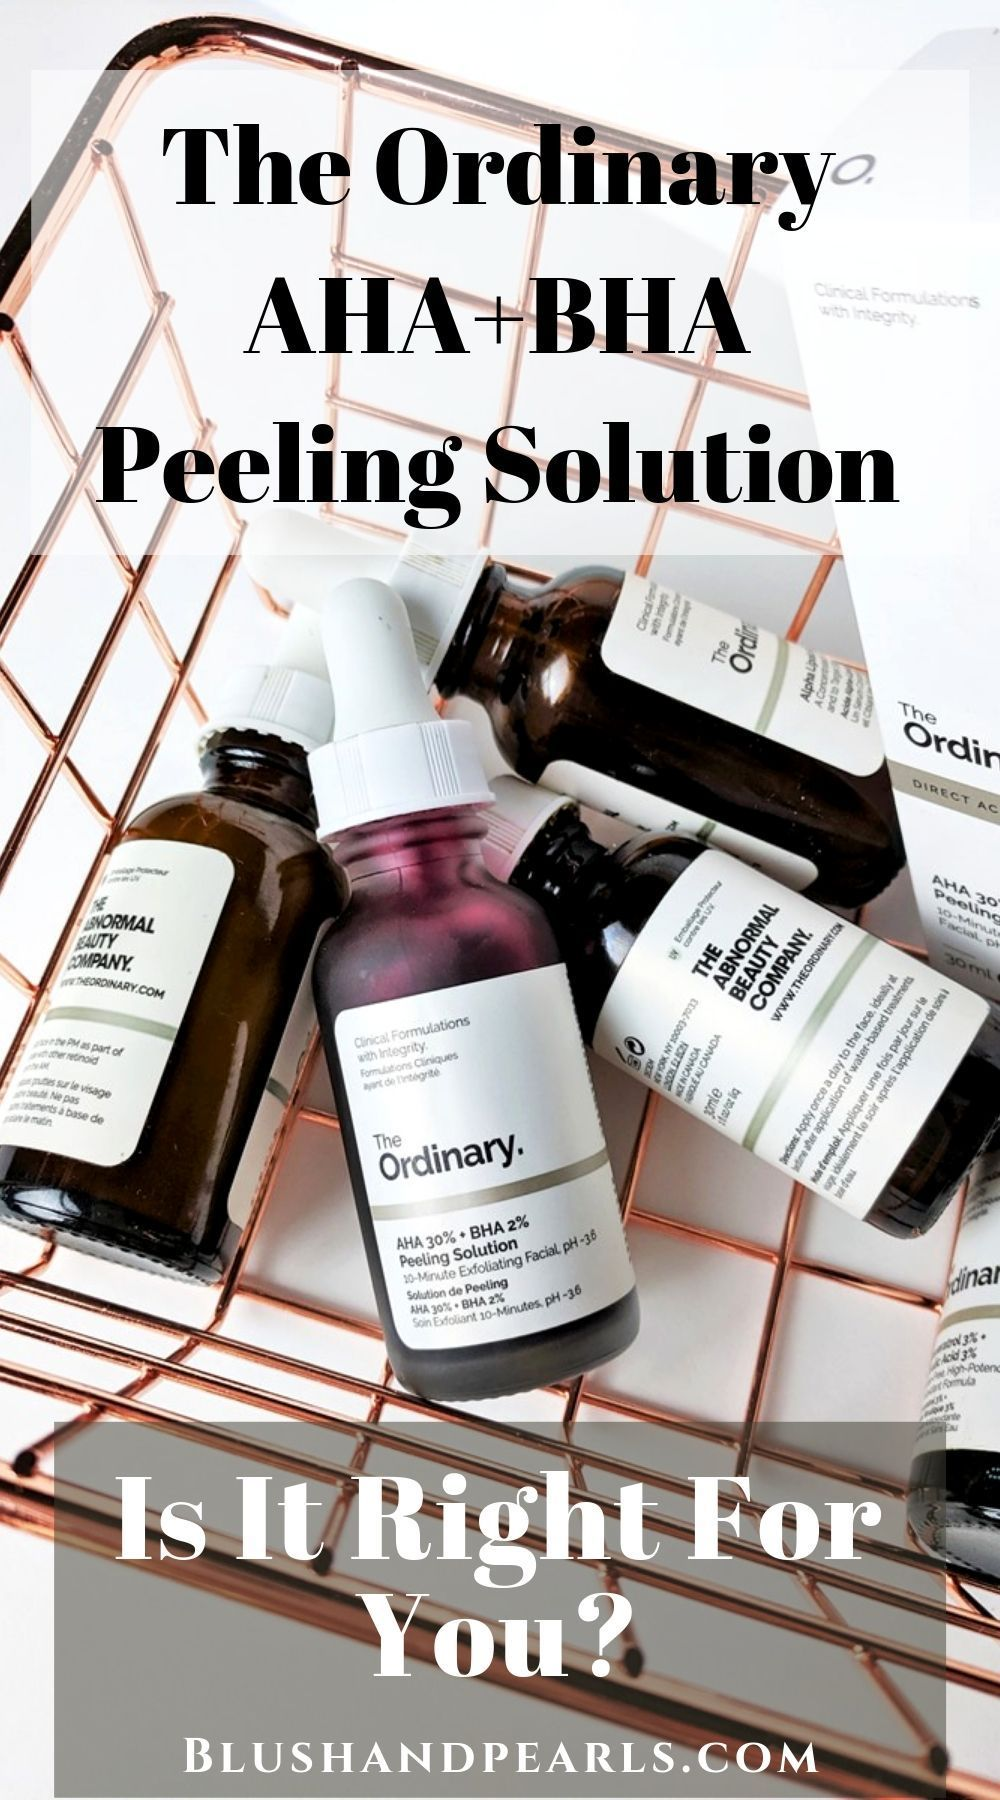 The Ordinary Aha 30 Bha 2 Peeling Solution Complexion Miracle Worker Blush Pearls In 2020 Facial Peel The Ordinary Peeling Solution The Ordinary Aha 30